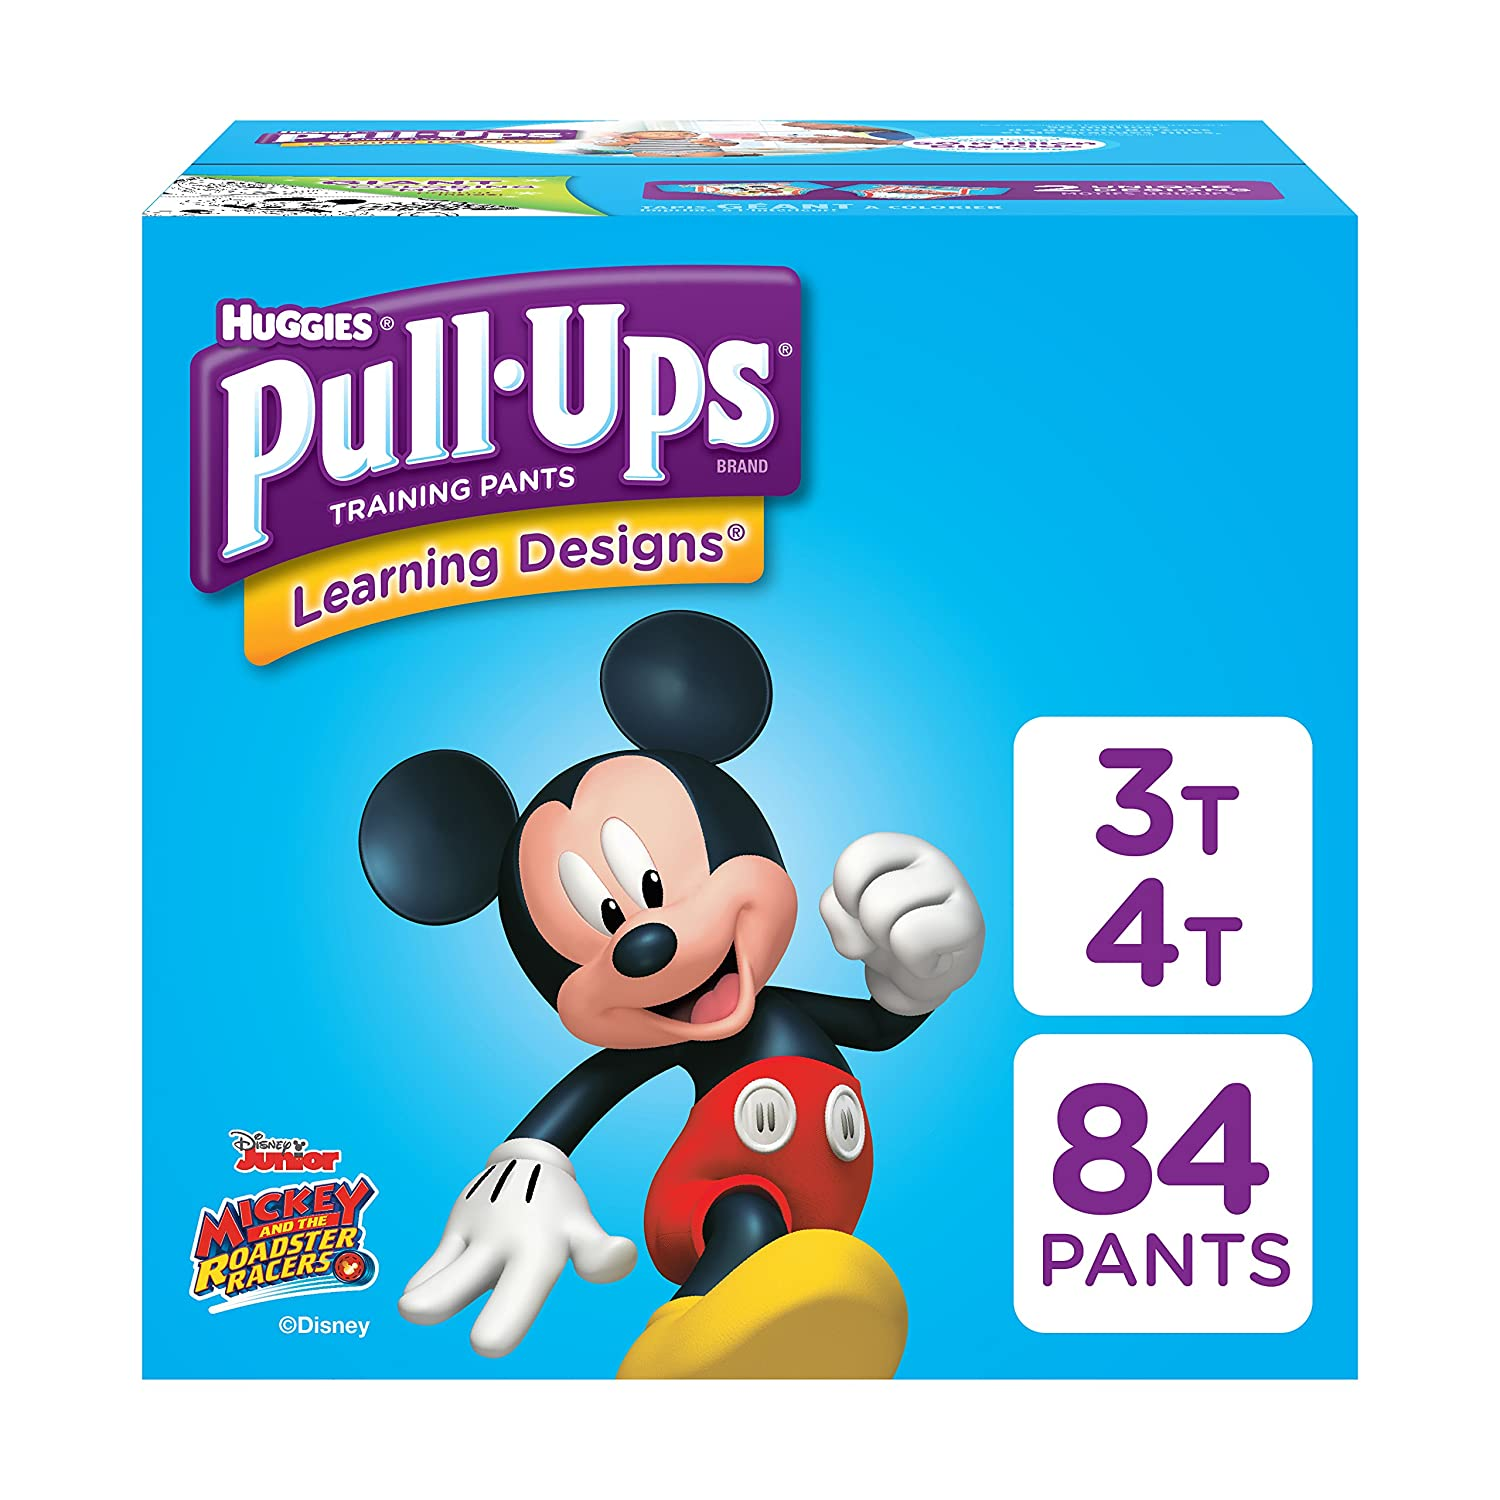 Pull-Ups Learning Designs Potty Training Pants for Boys, 4T-5T (38-50 lb.), 74 Ct. (Packaging May Vary) 10036000452706